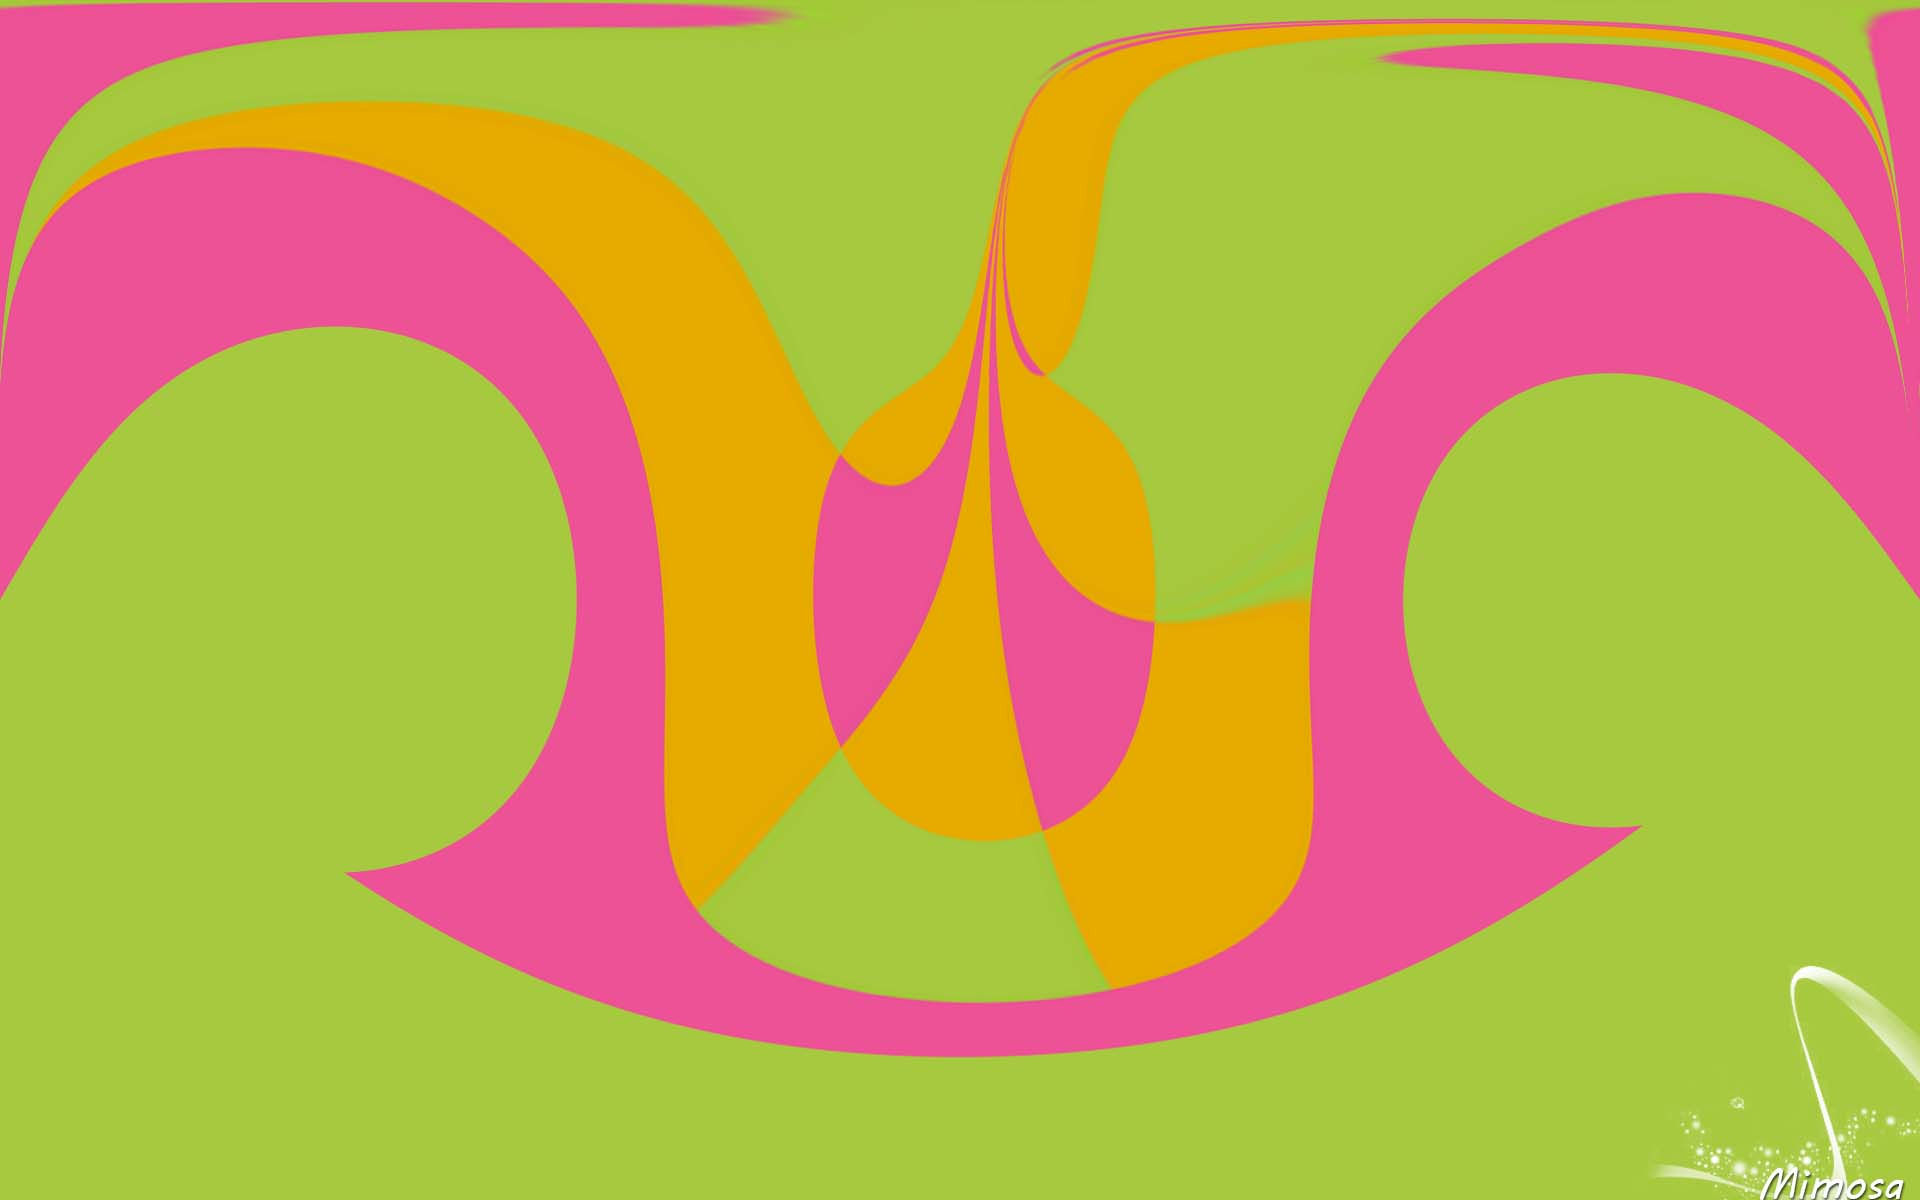 Abstract Artistic Colorful Digital Art Green Shapes 1920x1200